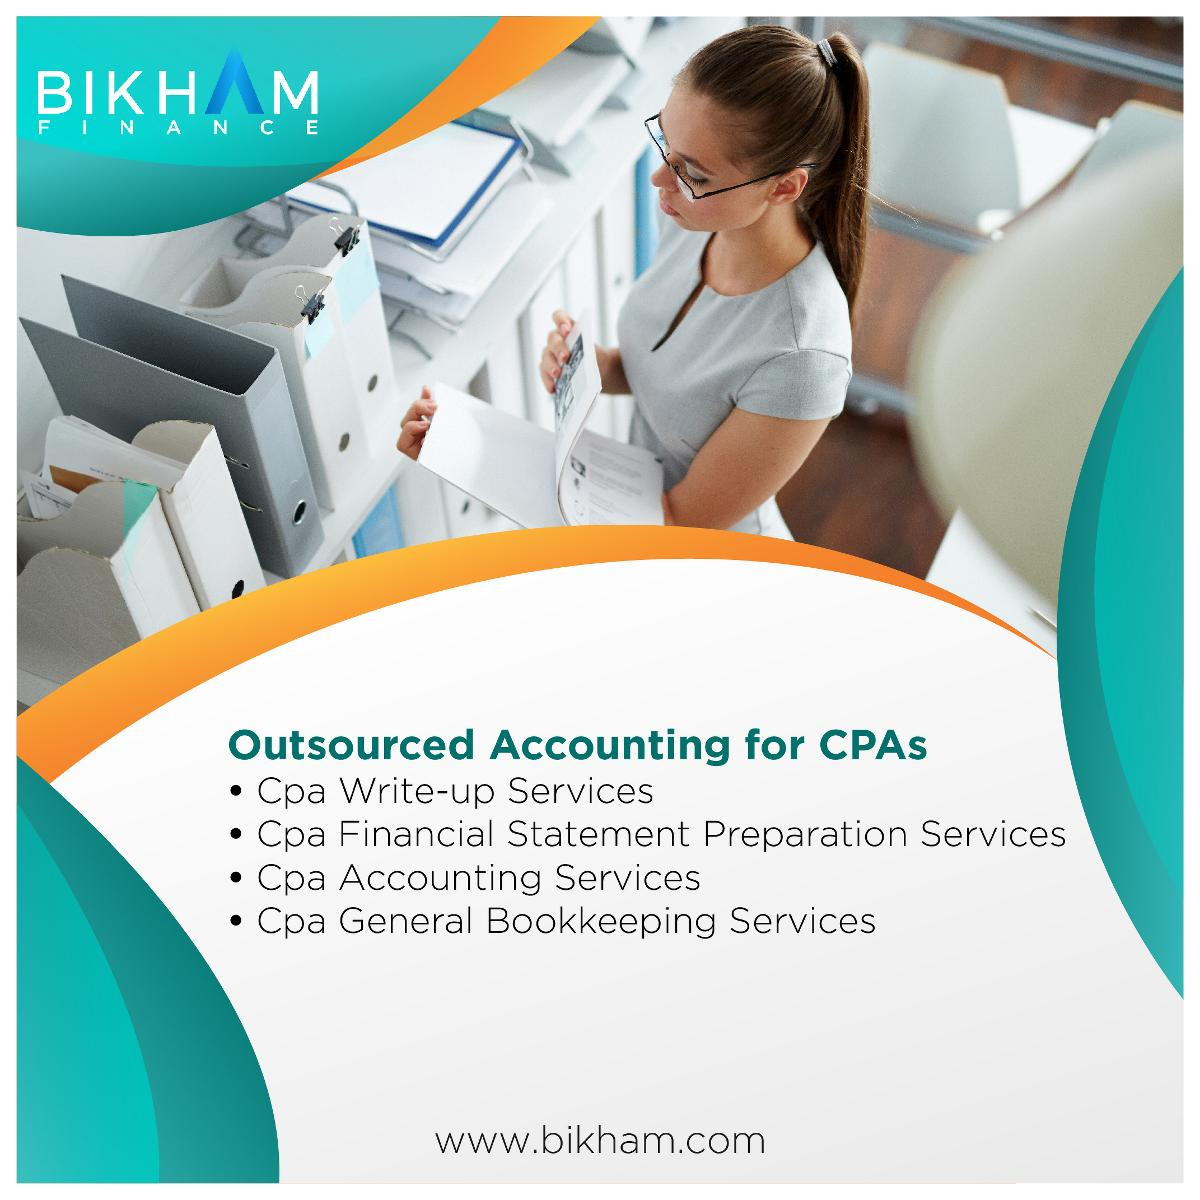 Outsourced Accounting for CPAs